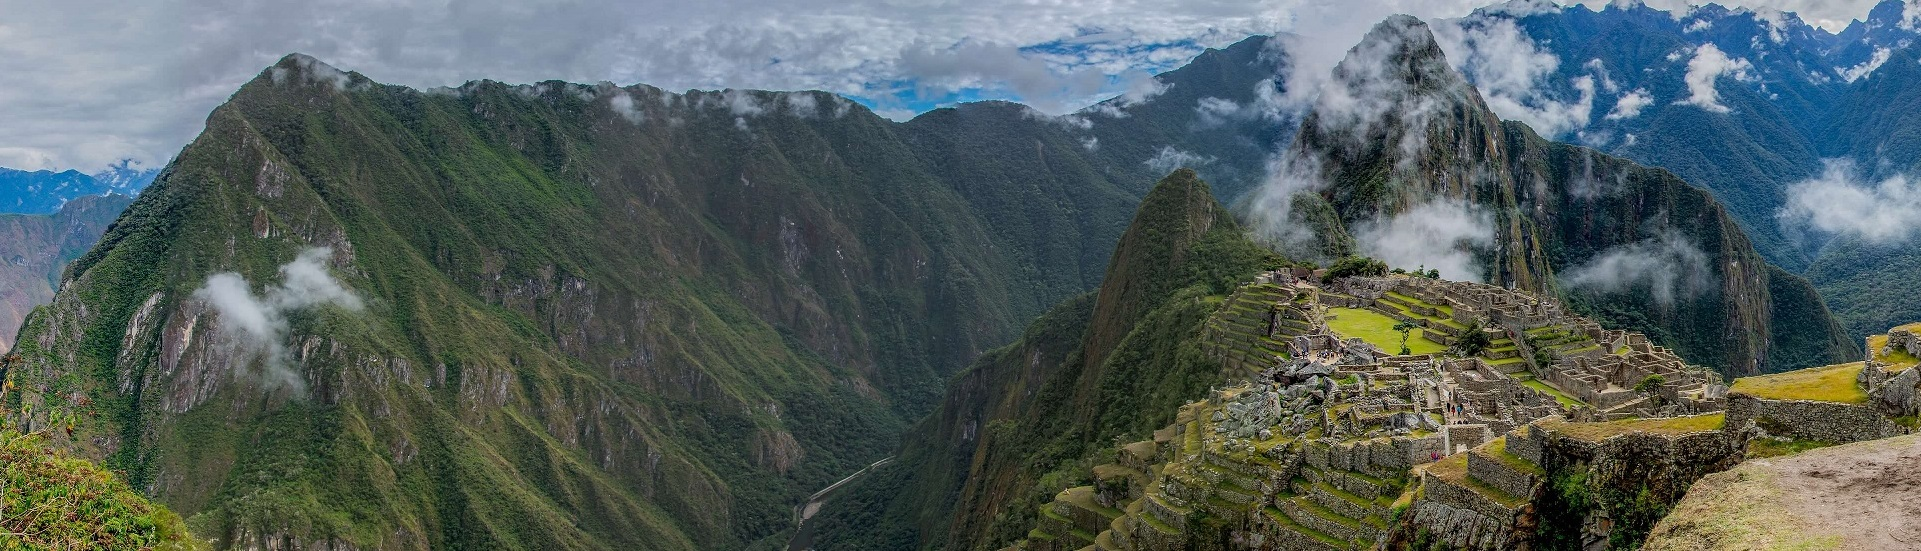 Hike the Highlights to Machu Picchu